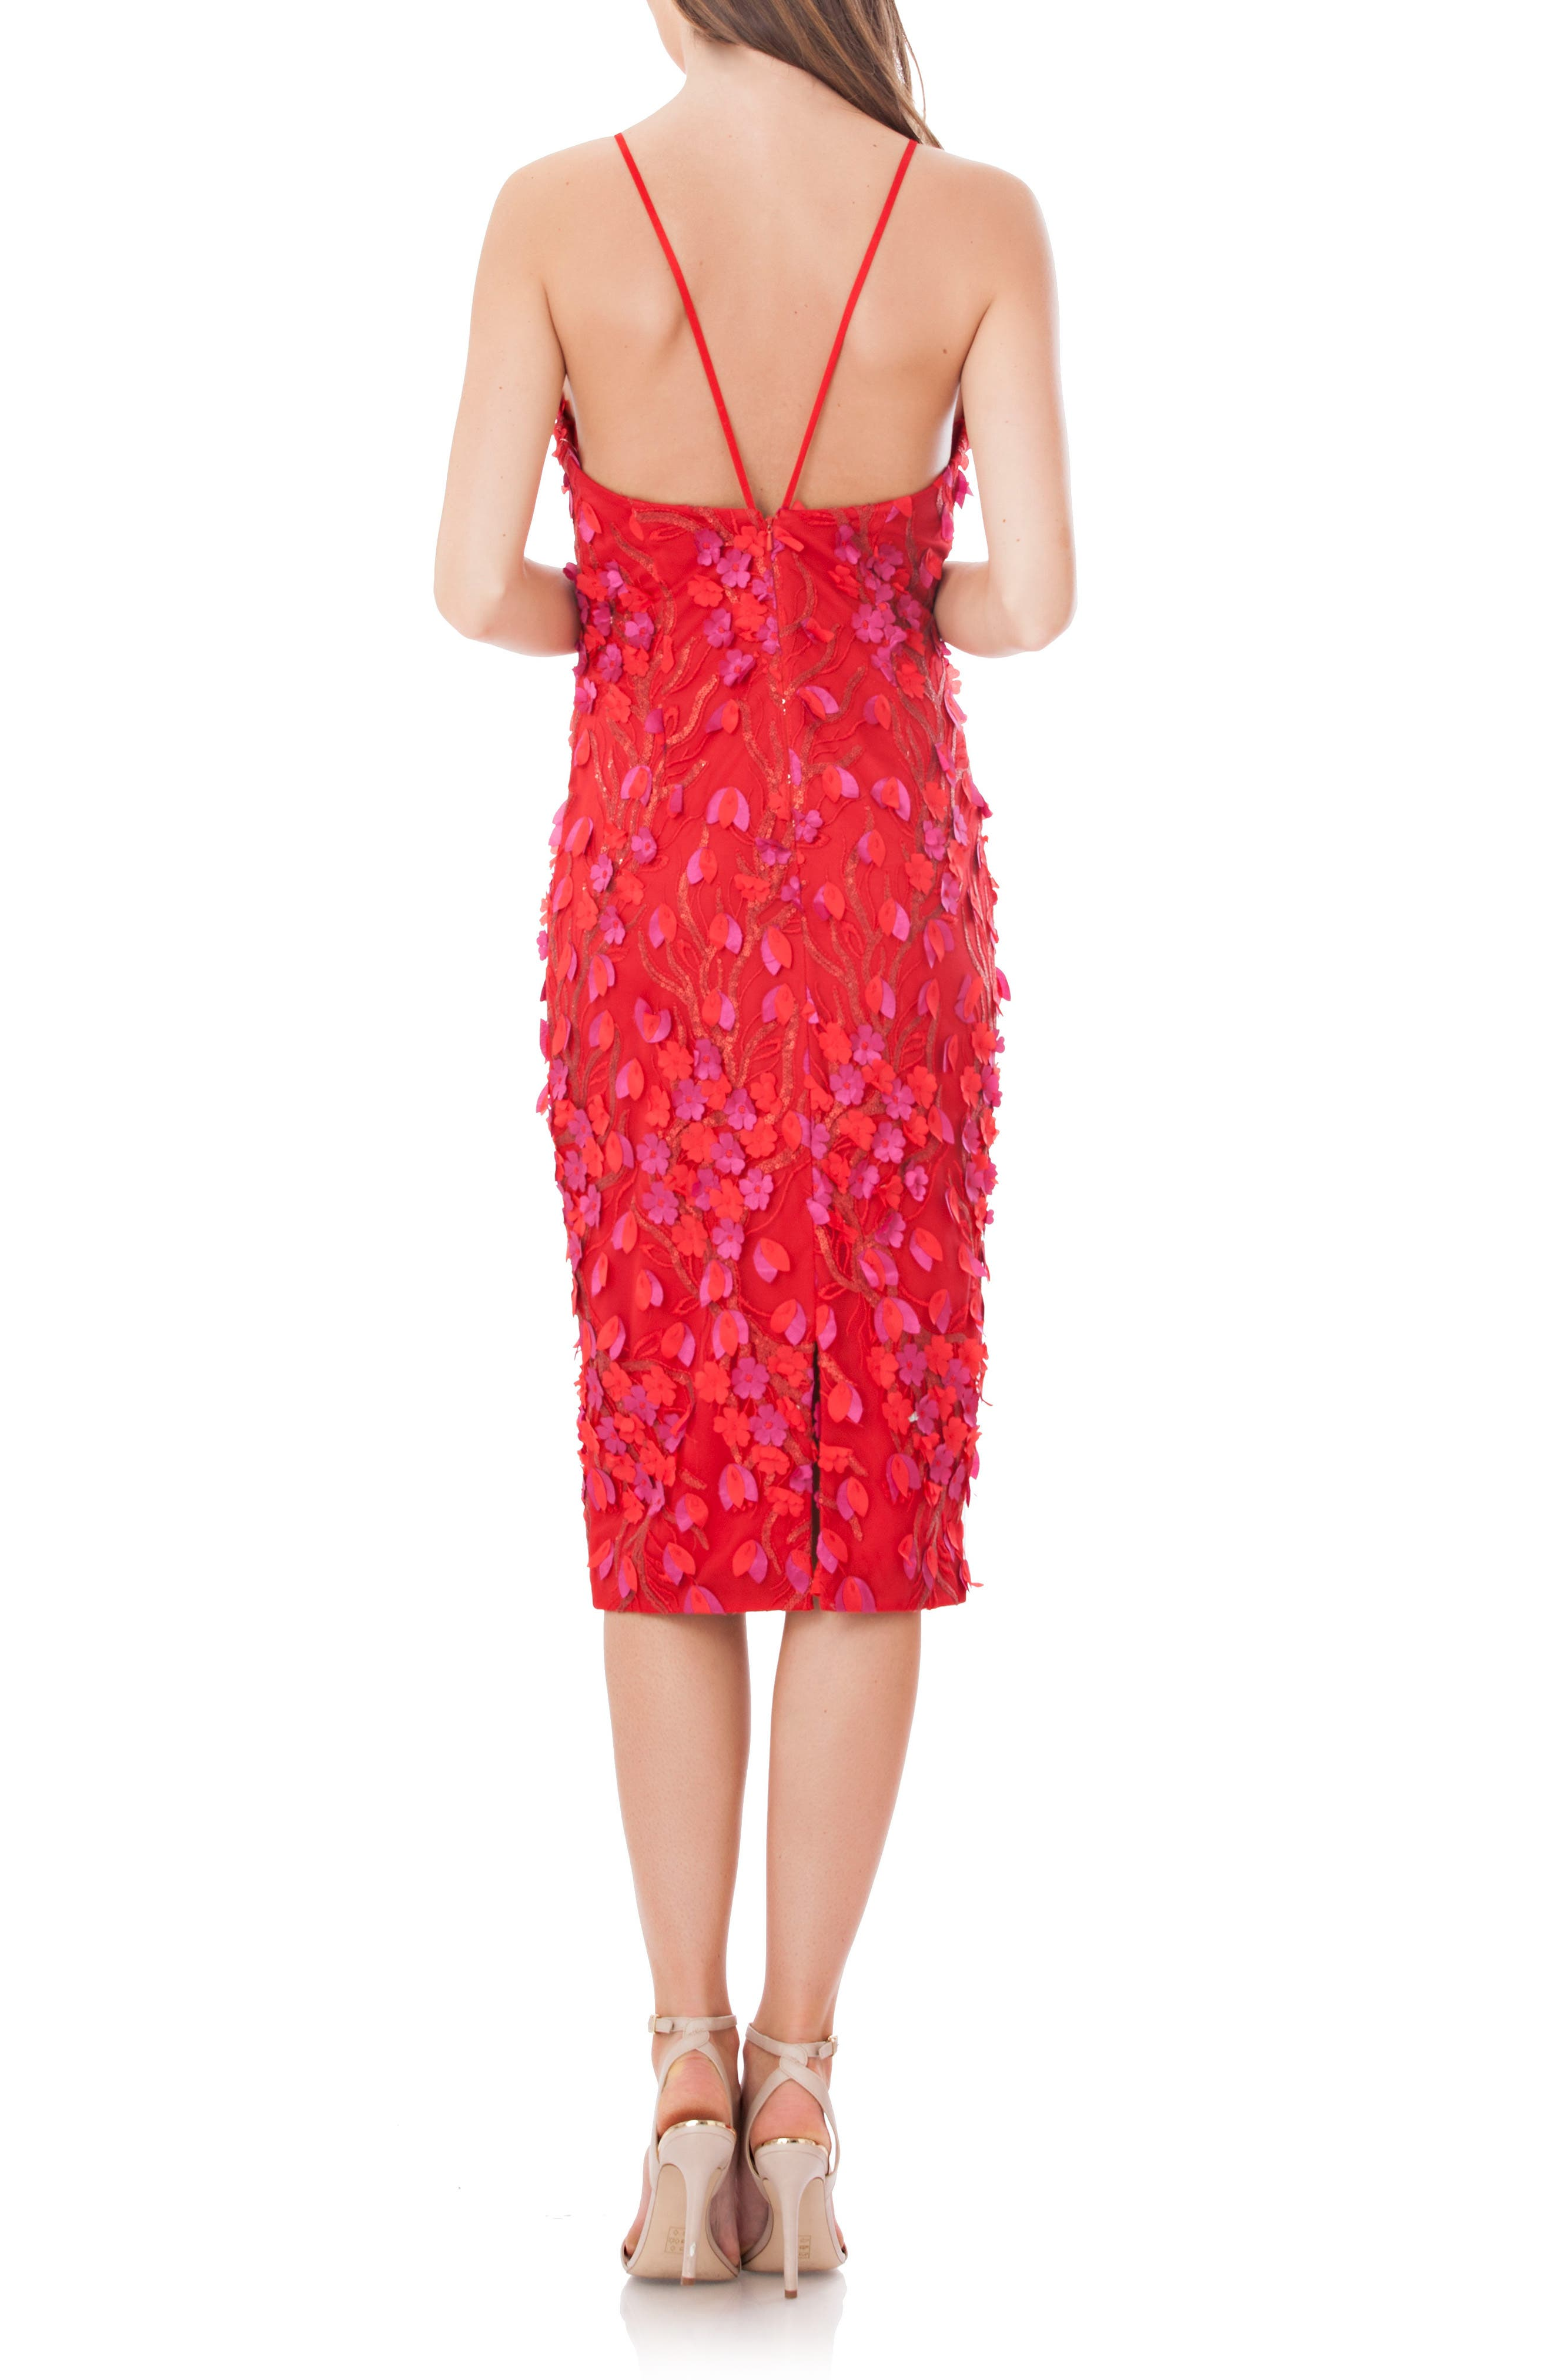 Petals Embellished Halter Neck Sheath Dress,                             Alternate thumbnail 2, color,                             Red